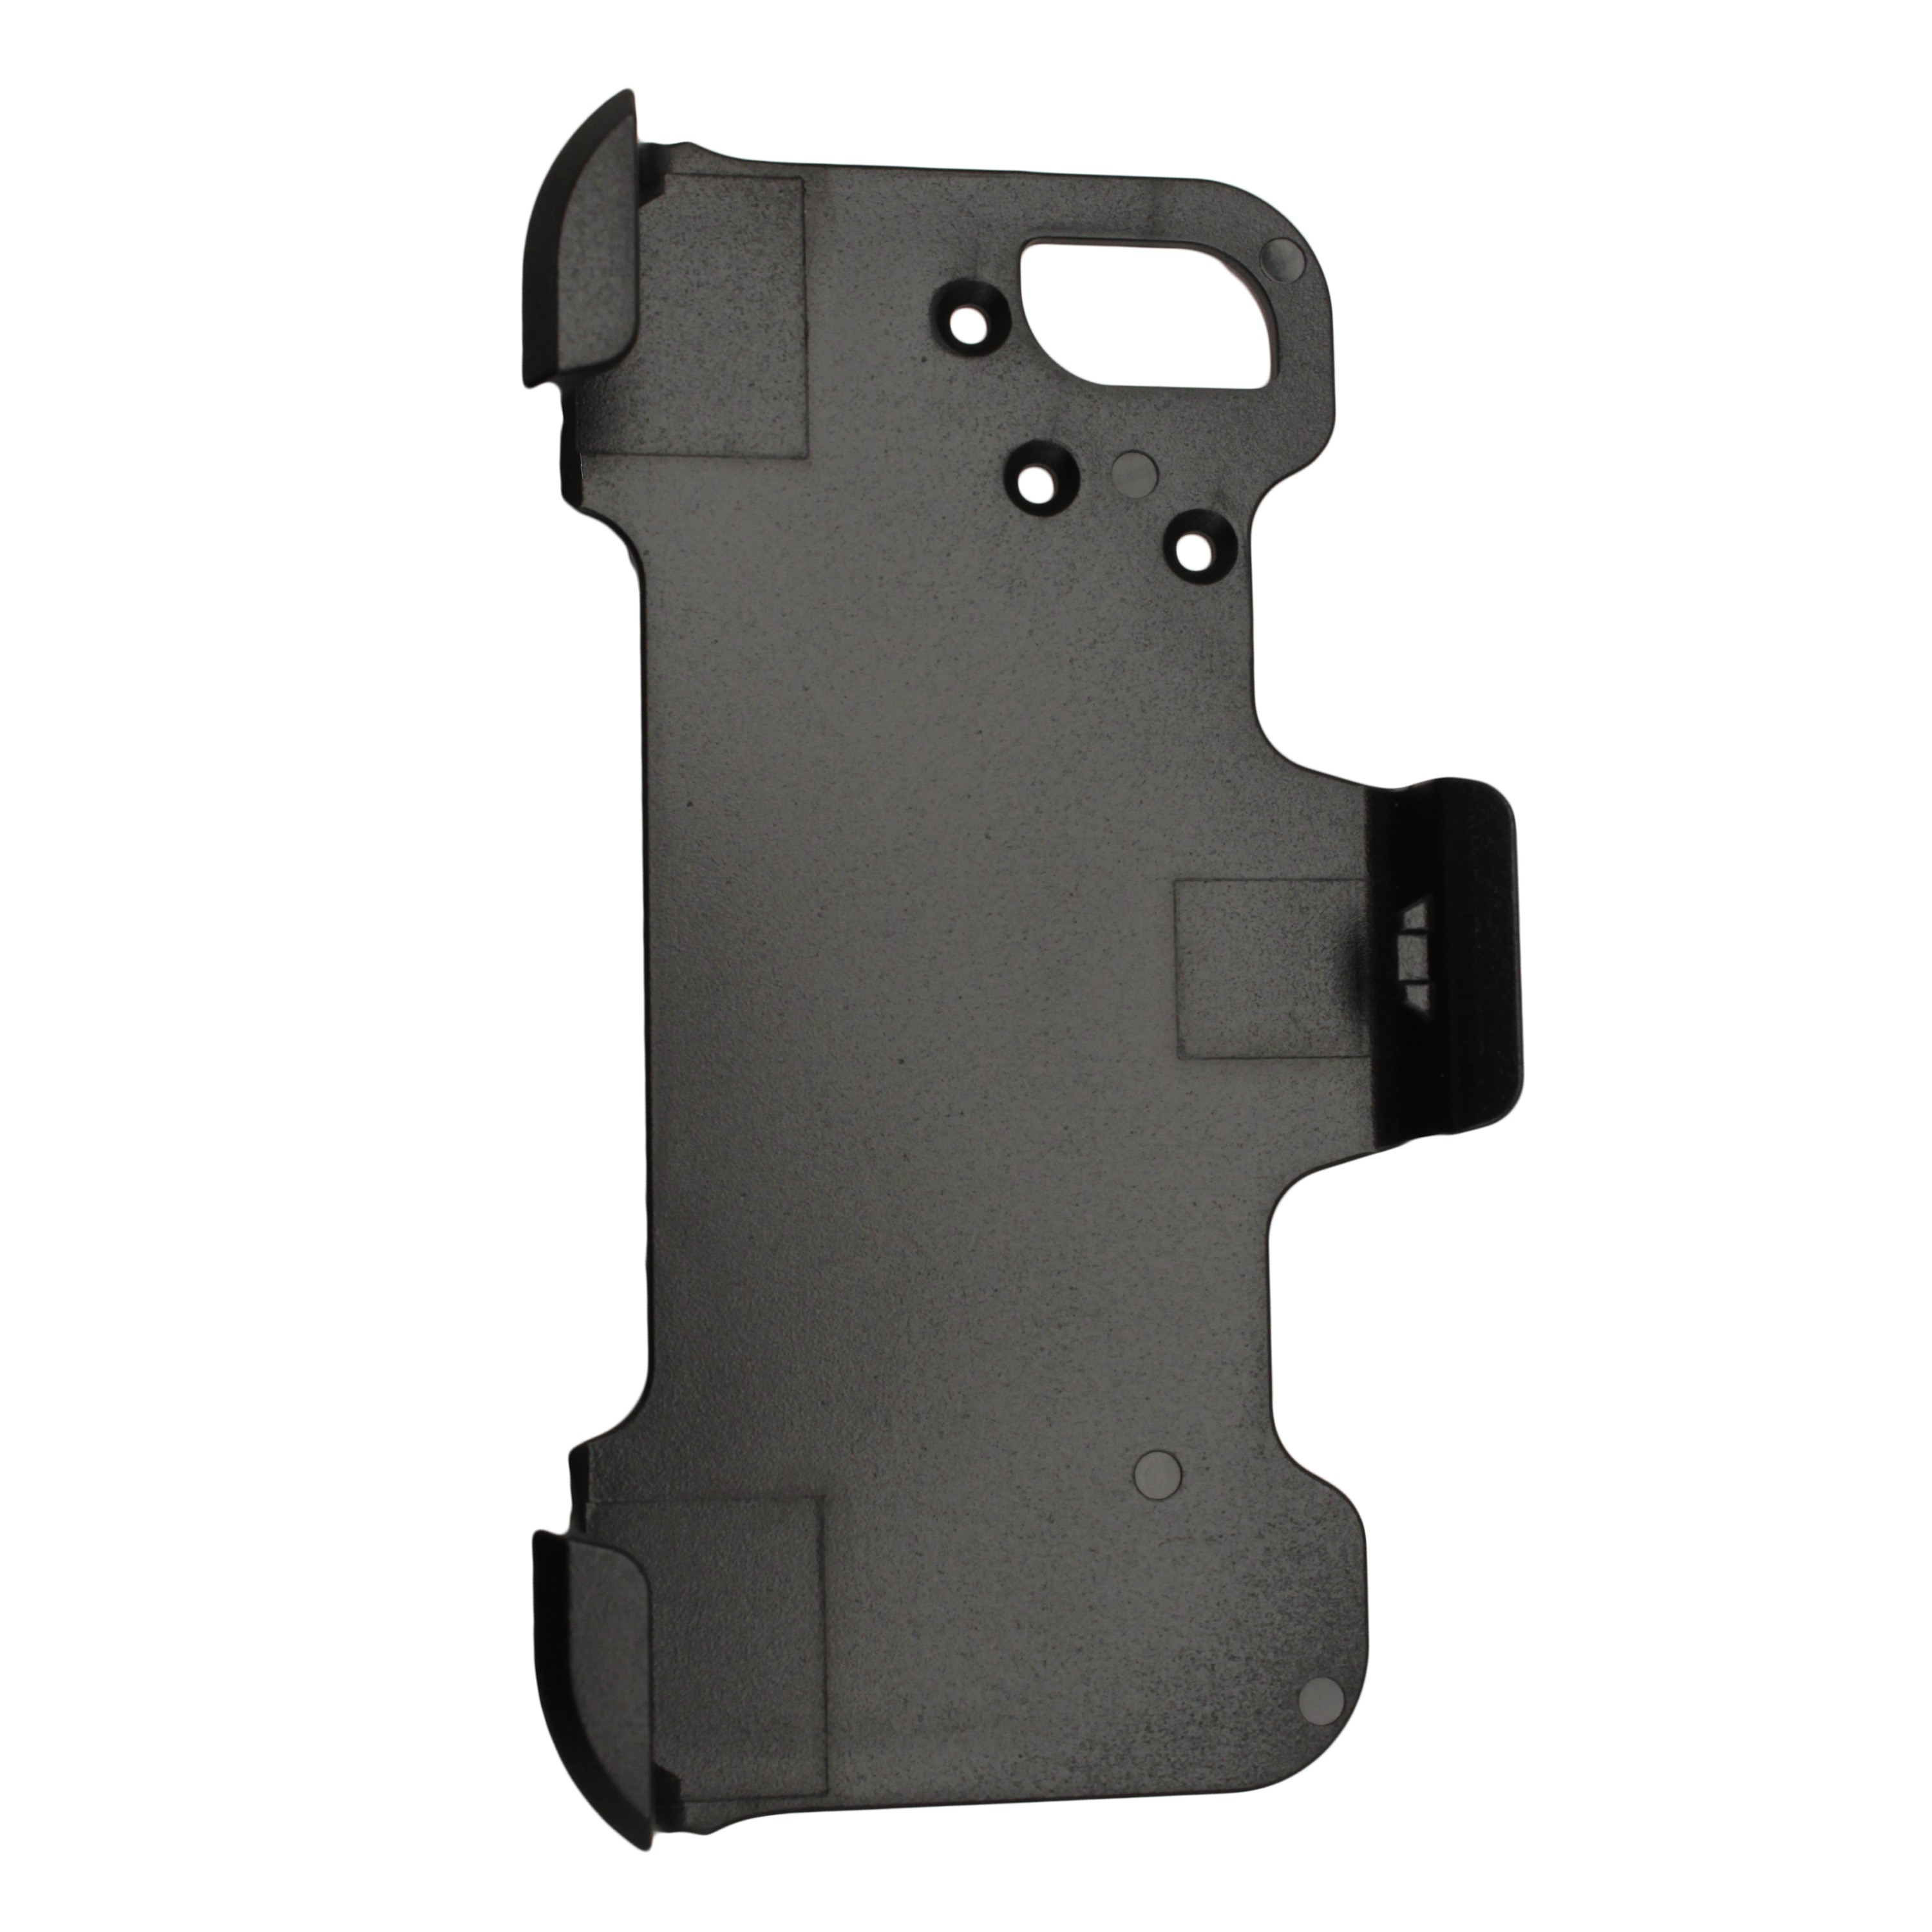 iScope iPhone 5 Defender Otterbox Back Plate